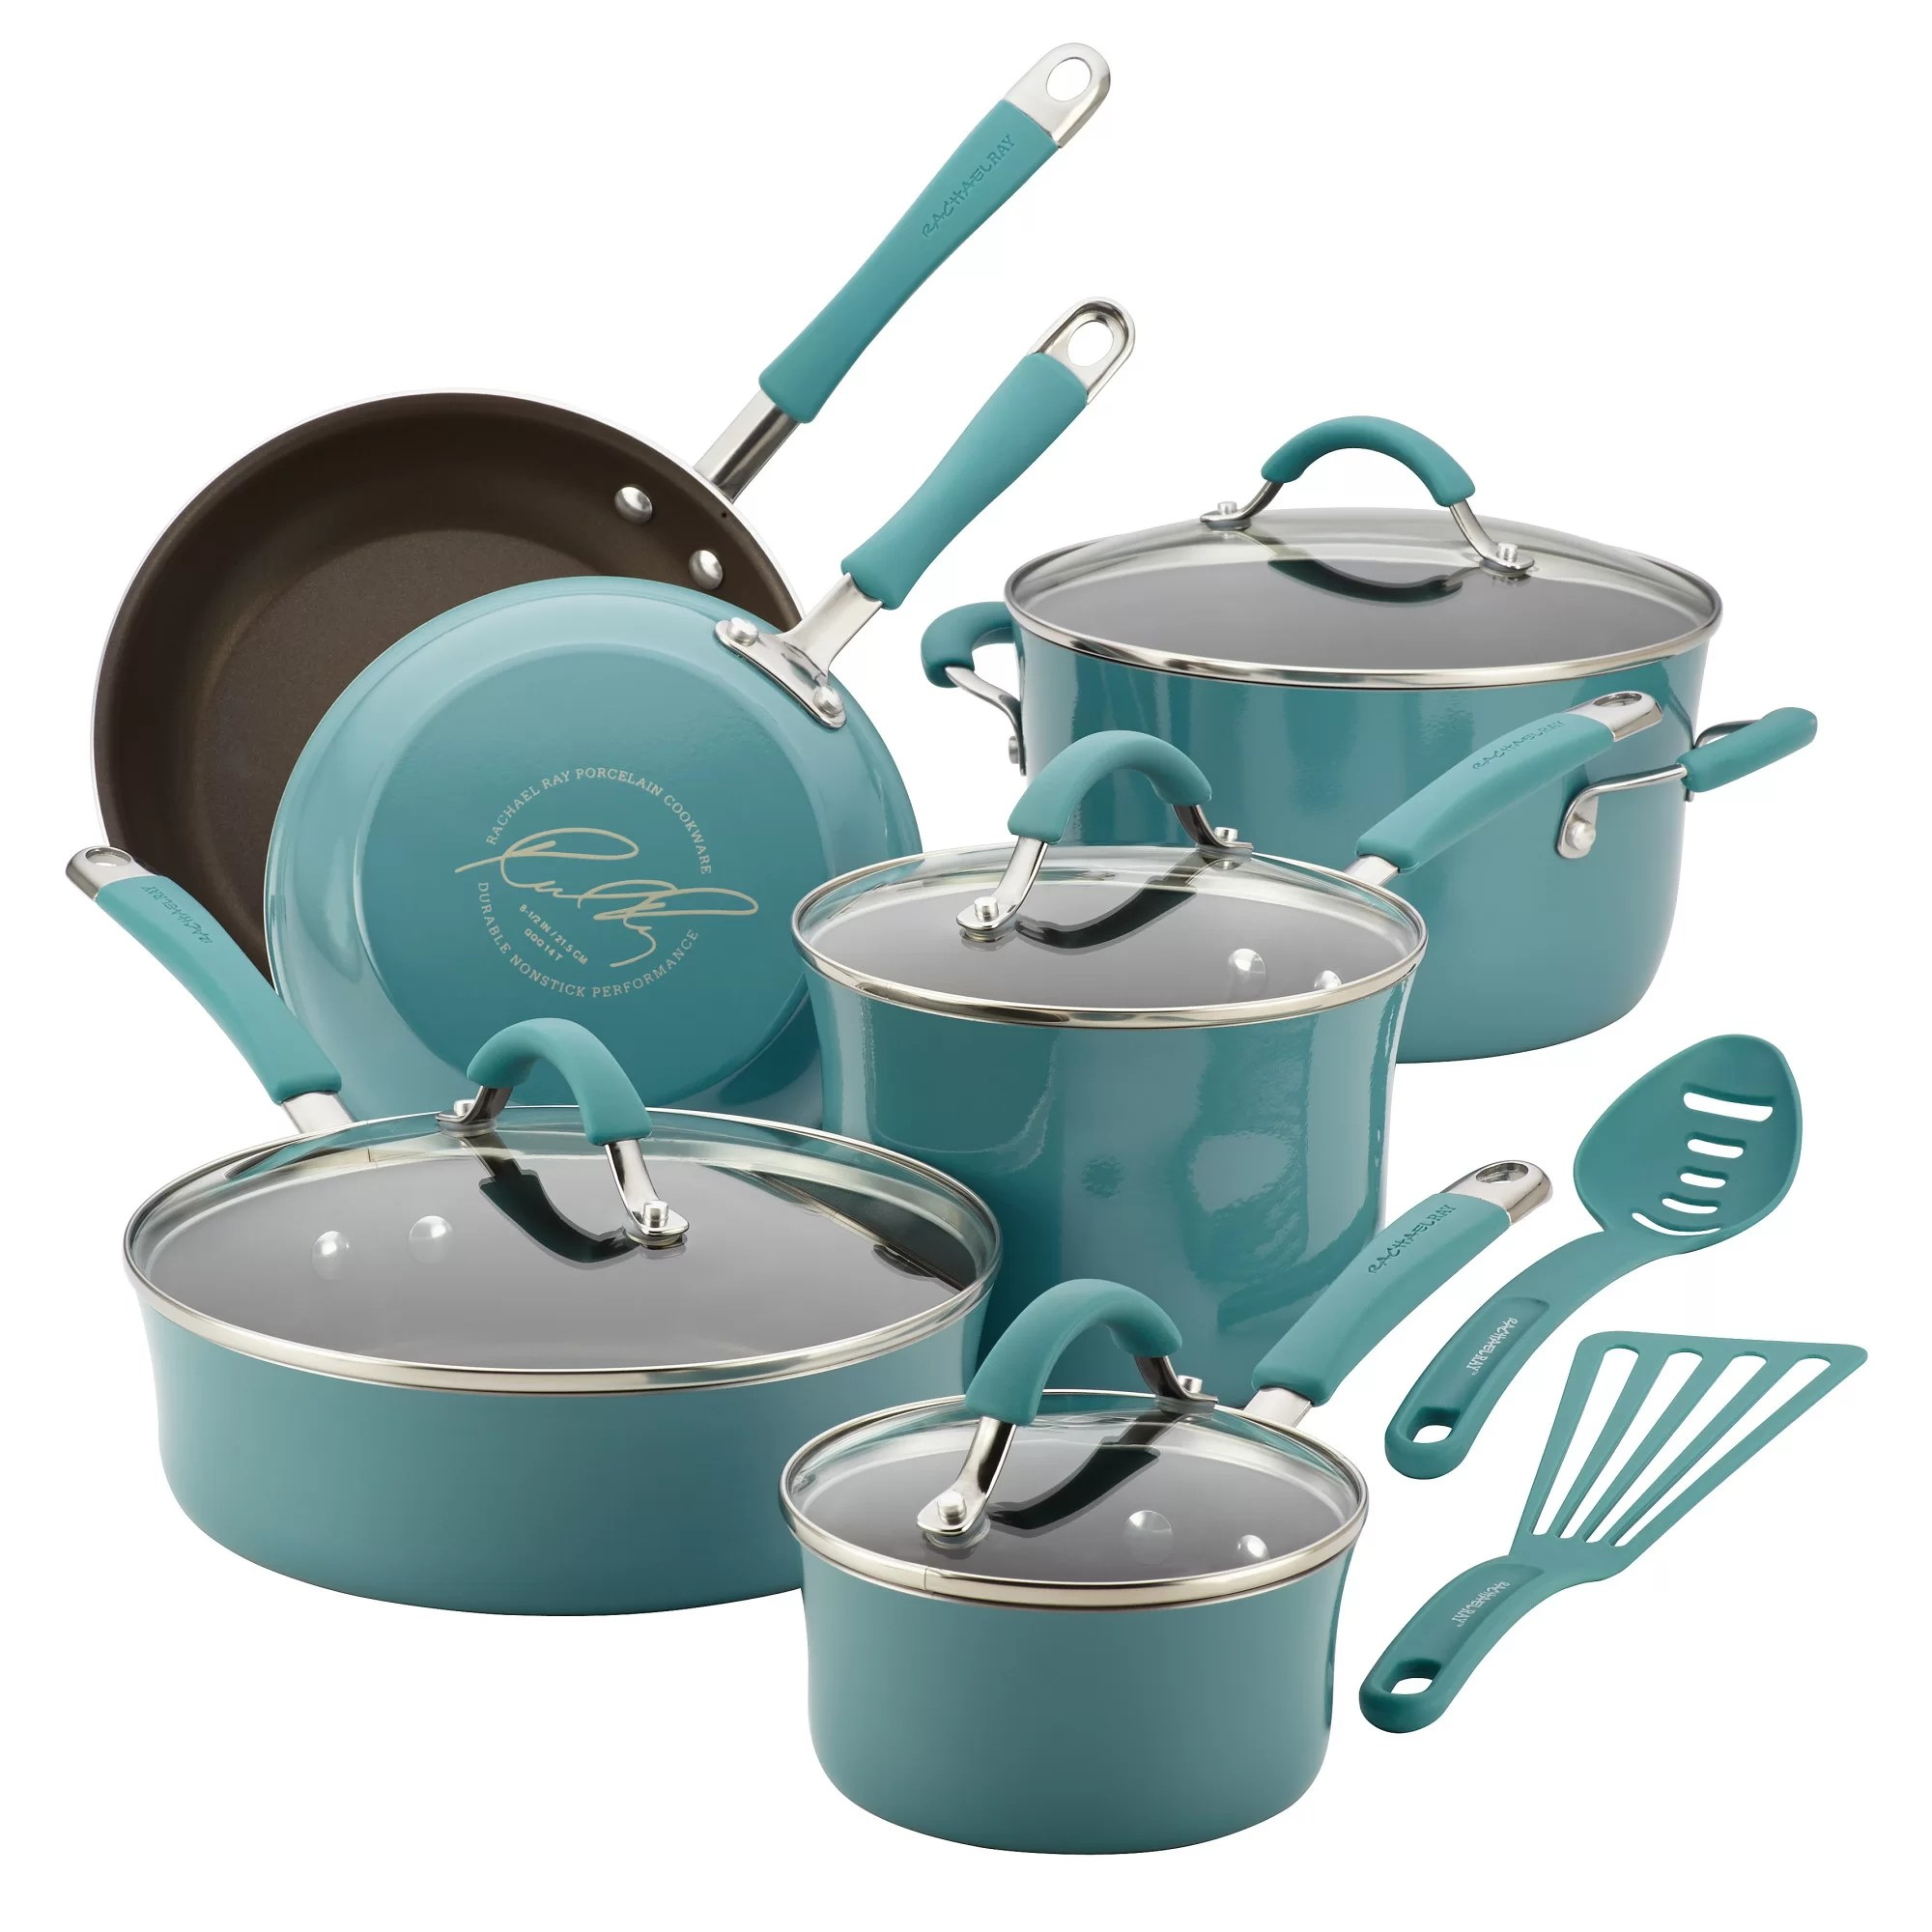 Cucina Kitchen Products Wayfair Rachael Ray Cucina 12 Piece Non Stick Cookware Set